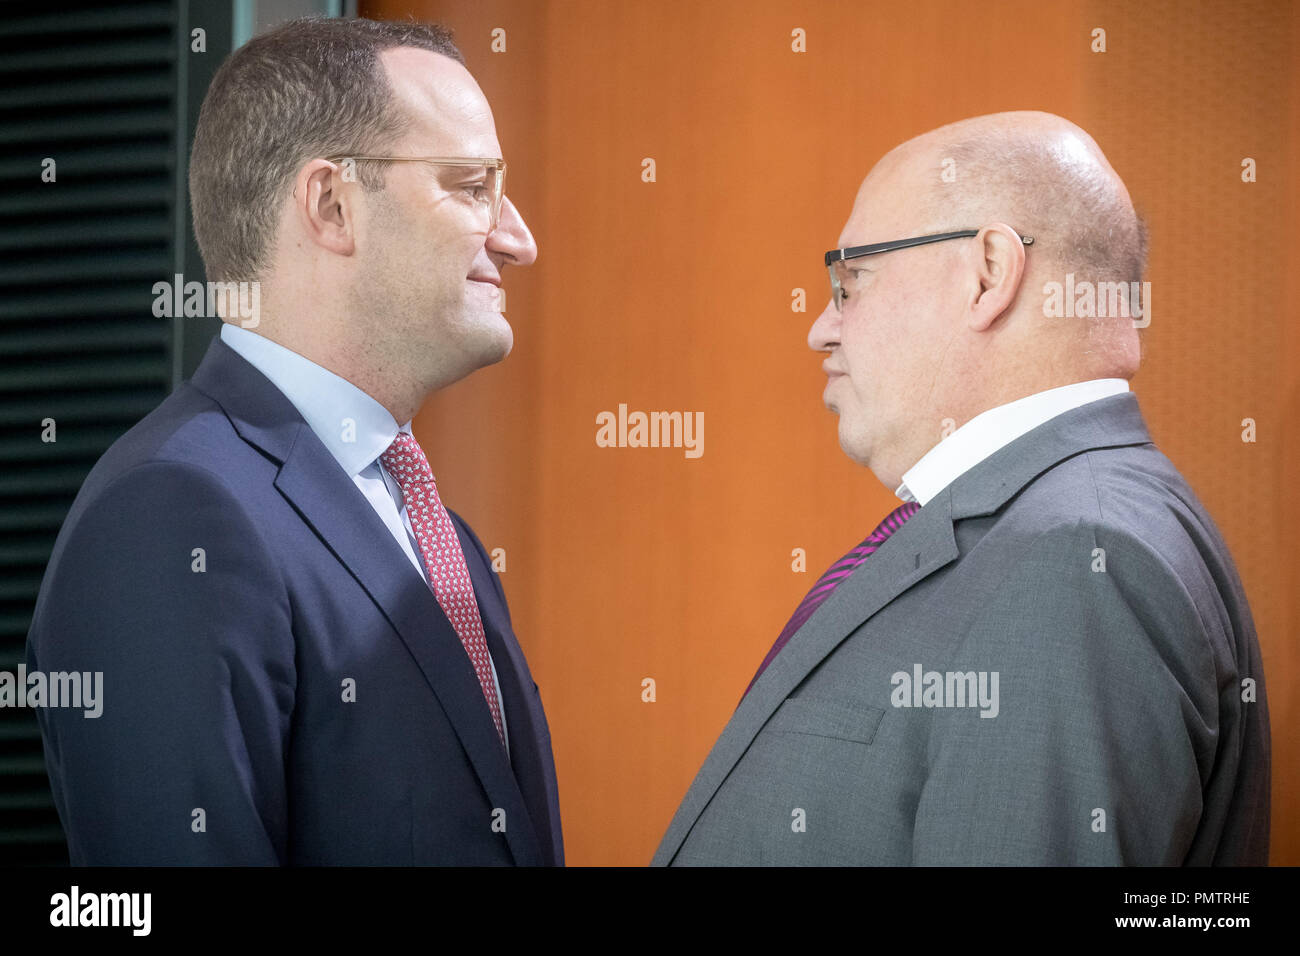 19 September 2018, Berlin: Jens Spahn (CDU, l), Federal Minister of Health, talks to Peter Altmaier (CDU), Federal Minister of Economics and Energy, before the beginning of the Federal Cabinet meeting in the Chancellor's Office. Photo: Michael Kappeler/dpa - Stock Image